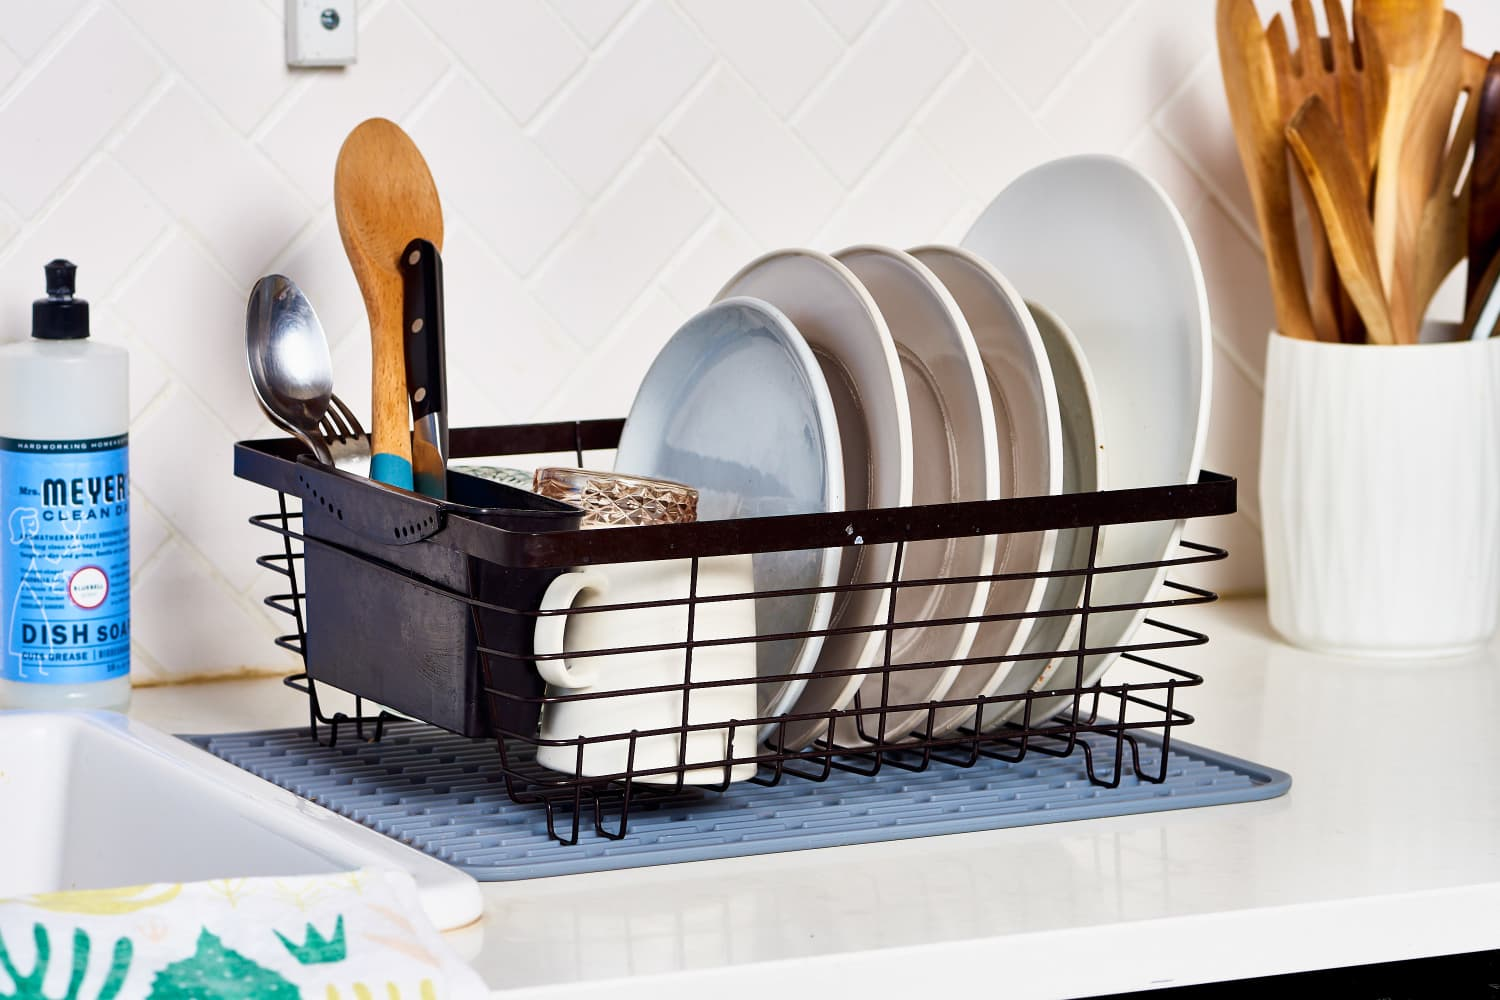 If You Only Wash The Top Of Your Dishes, We Need to Have a Sanitary Intervention ASAP